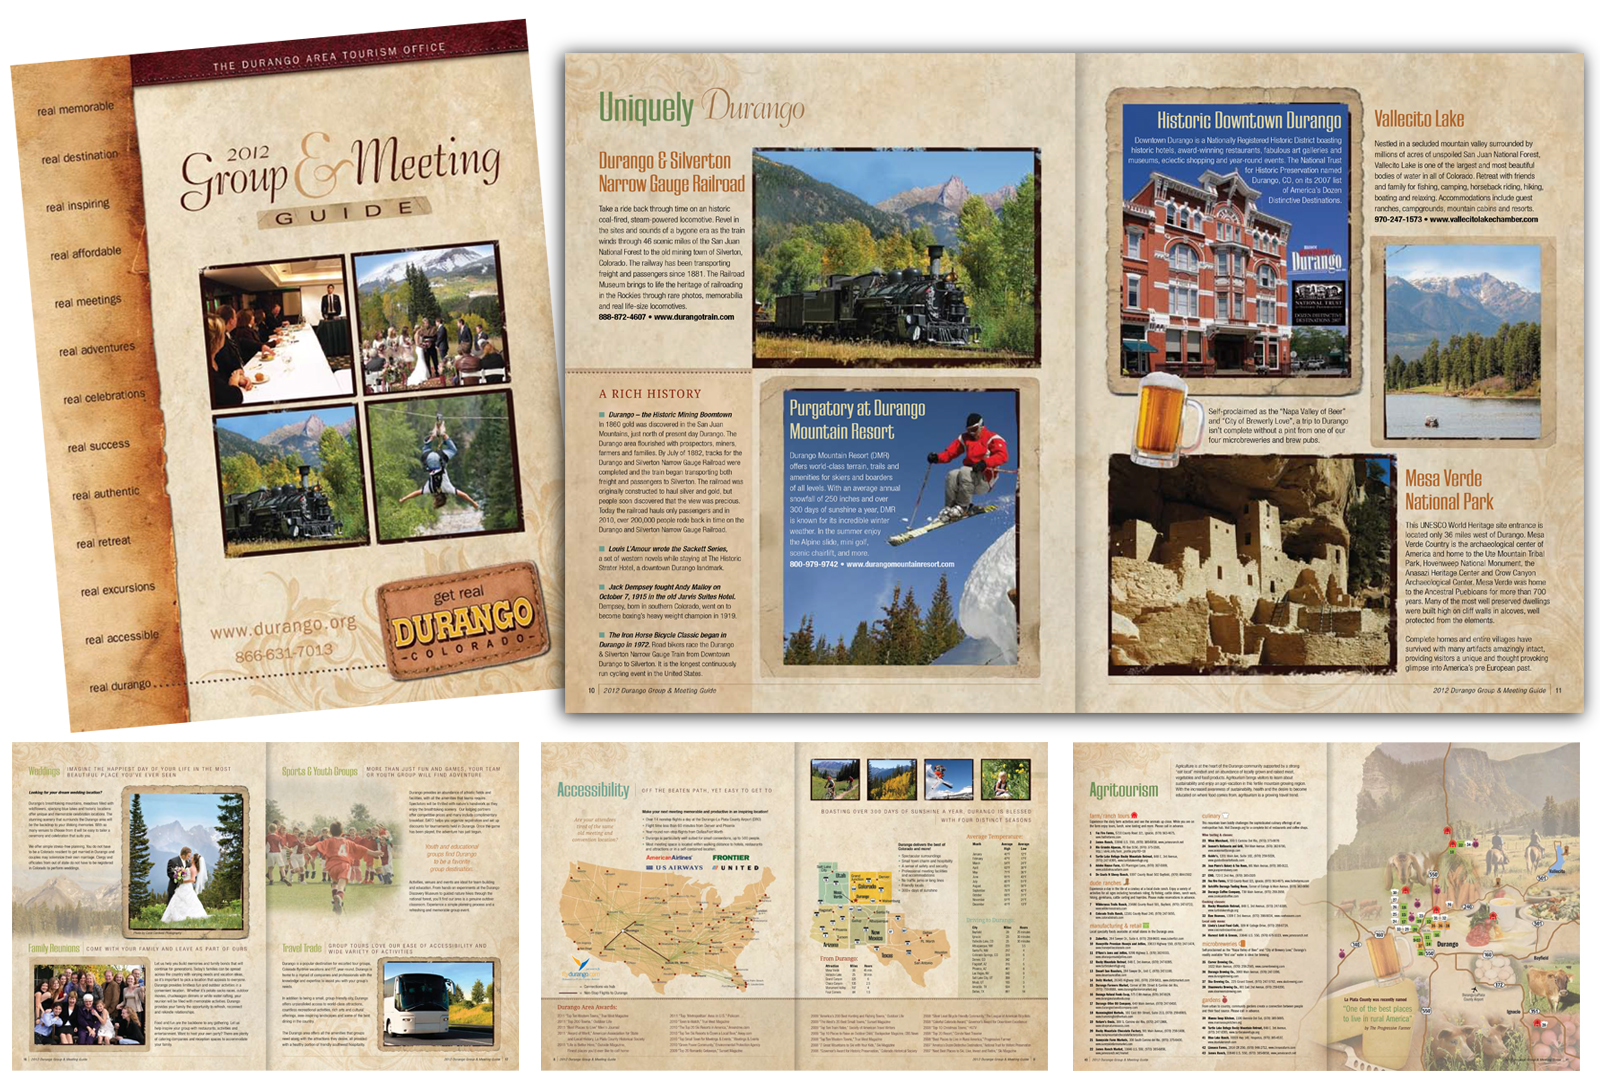 Tourism Advertising, travel guides